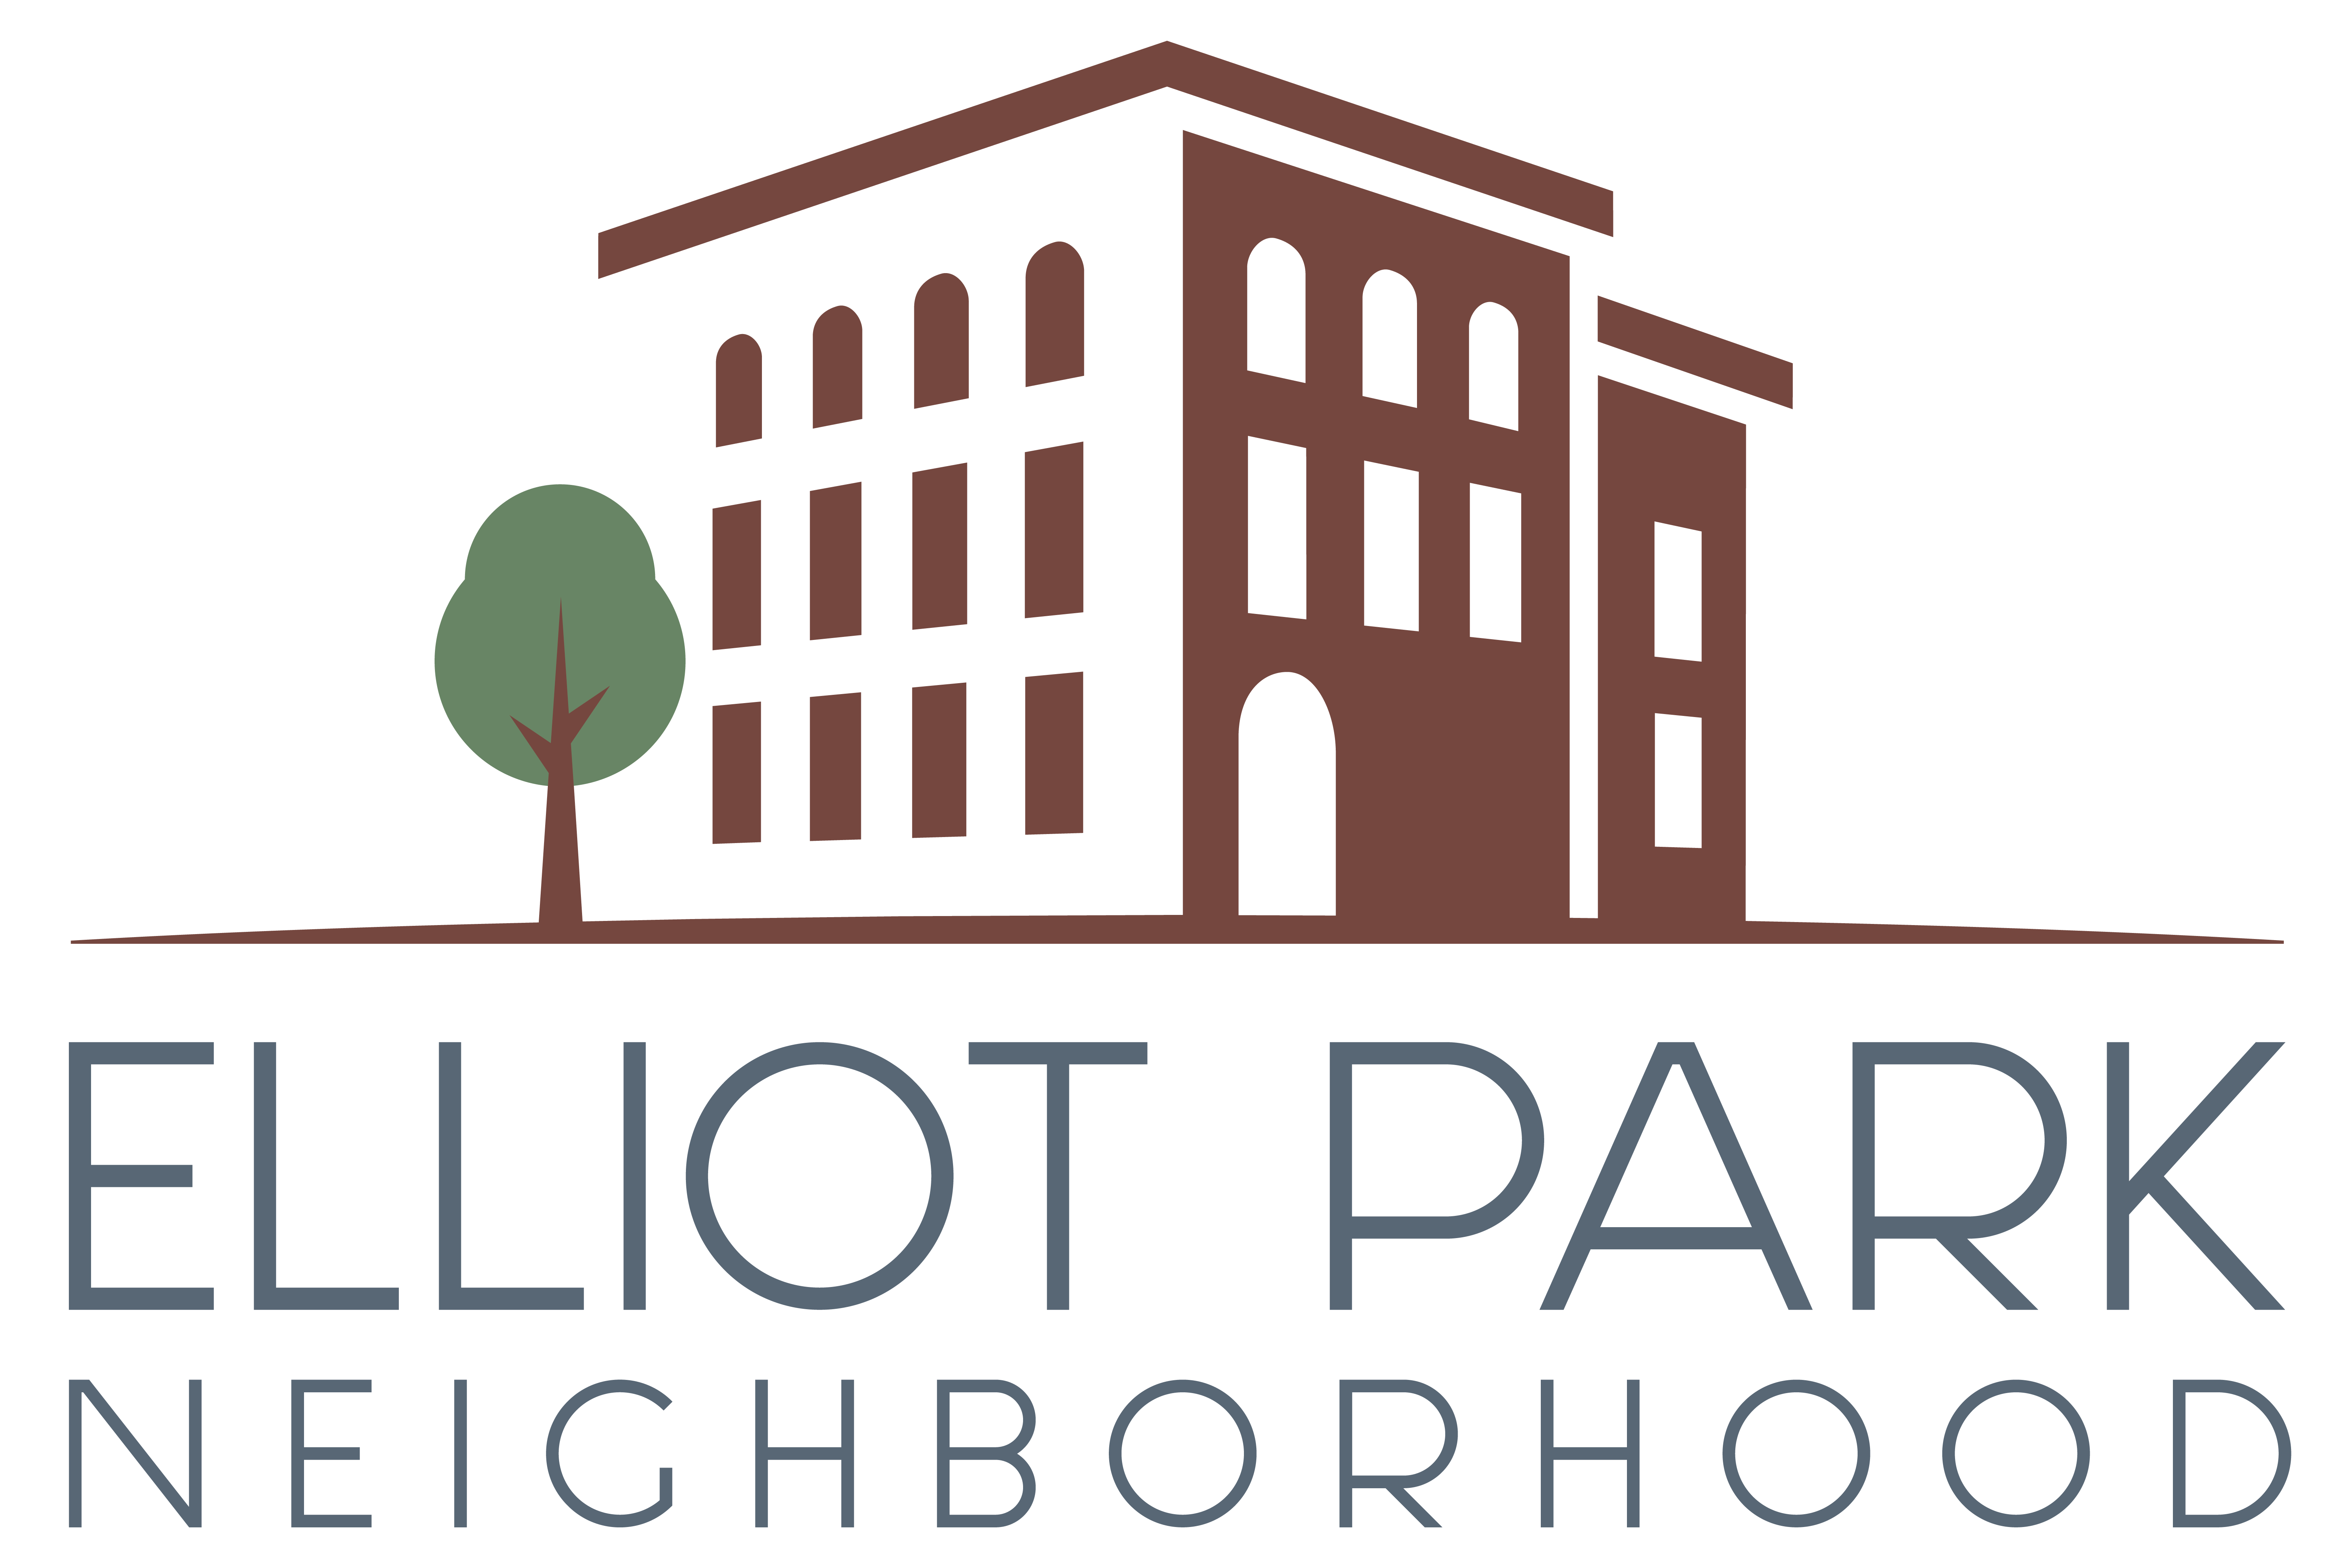 Elliot Park Neighborhood